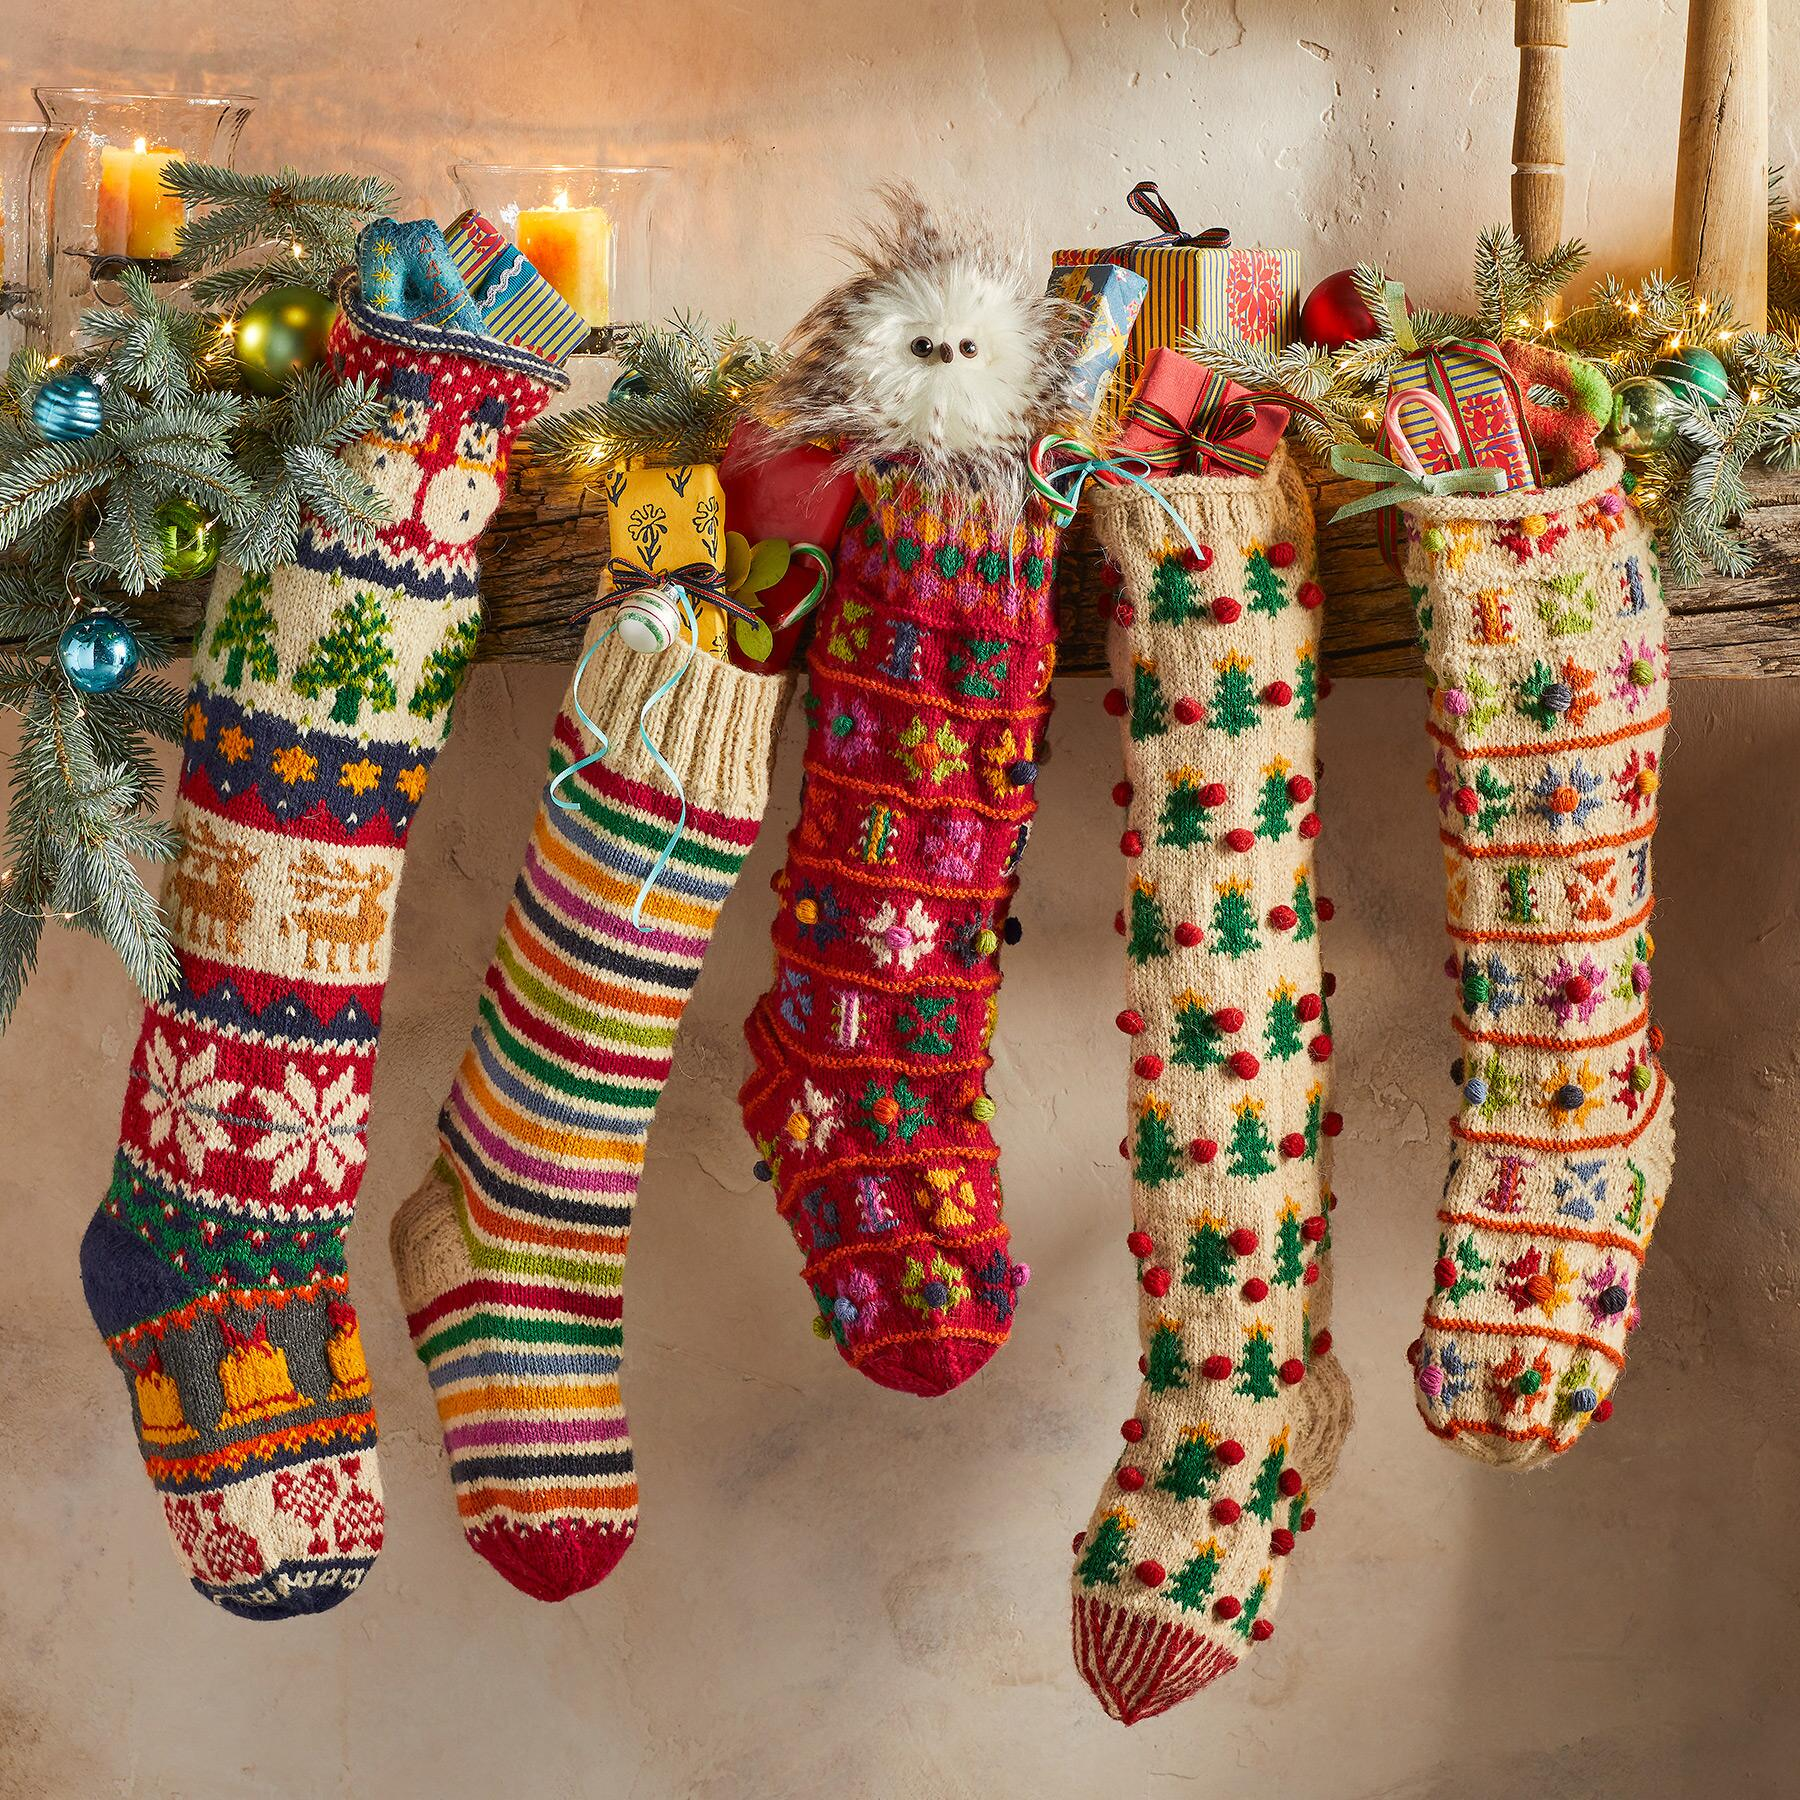 HEIRLOOM HOLIDAY MIX STOCKING: View 2